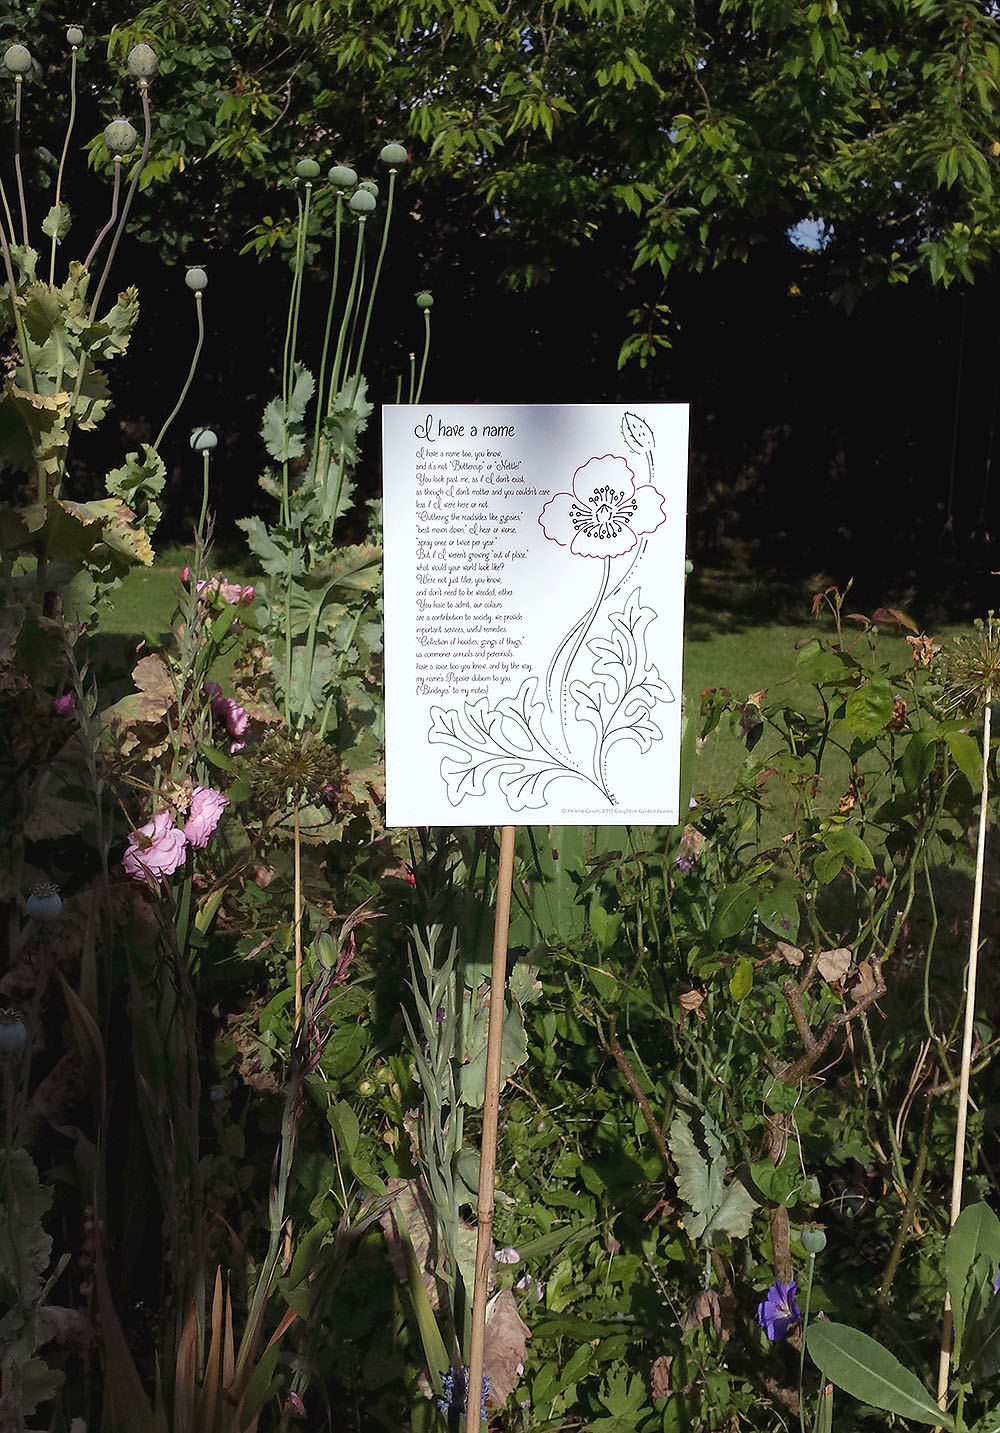 In situ at Coughton Court Gardens